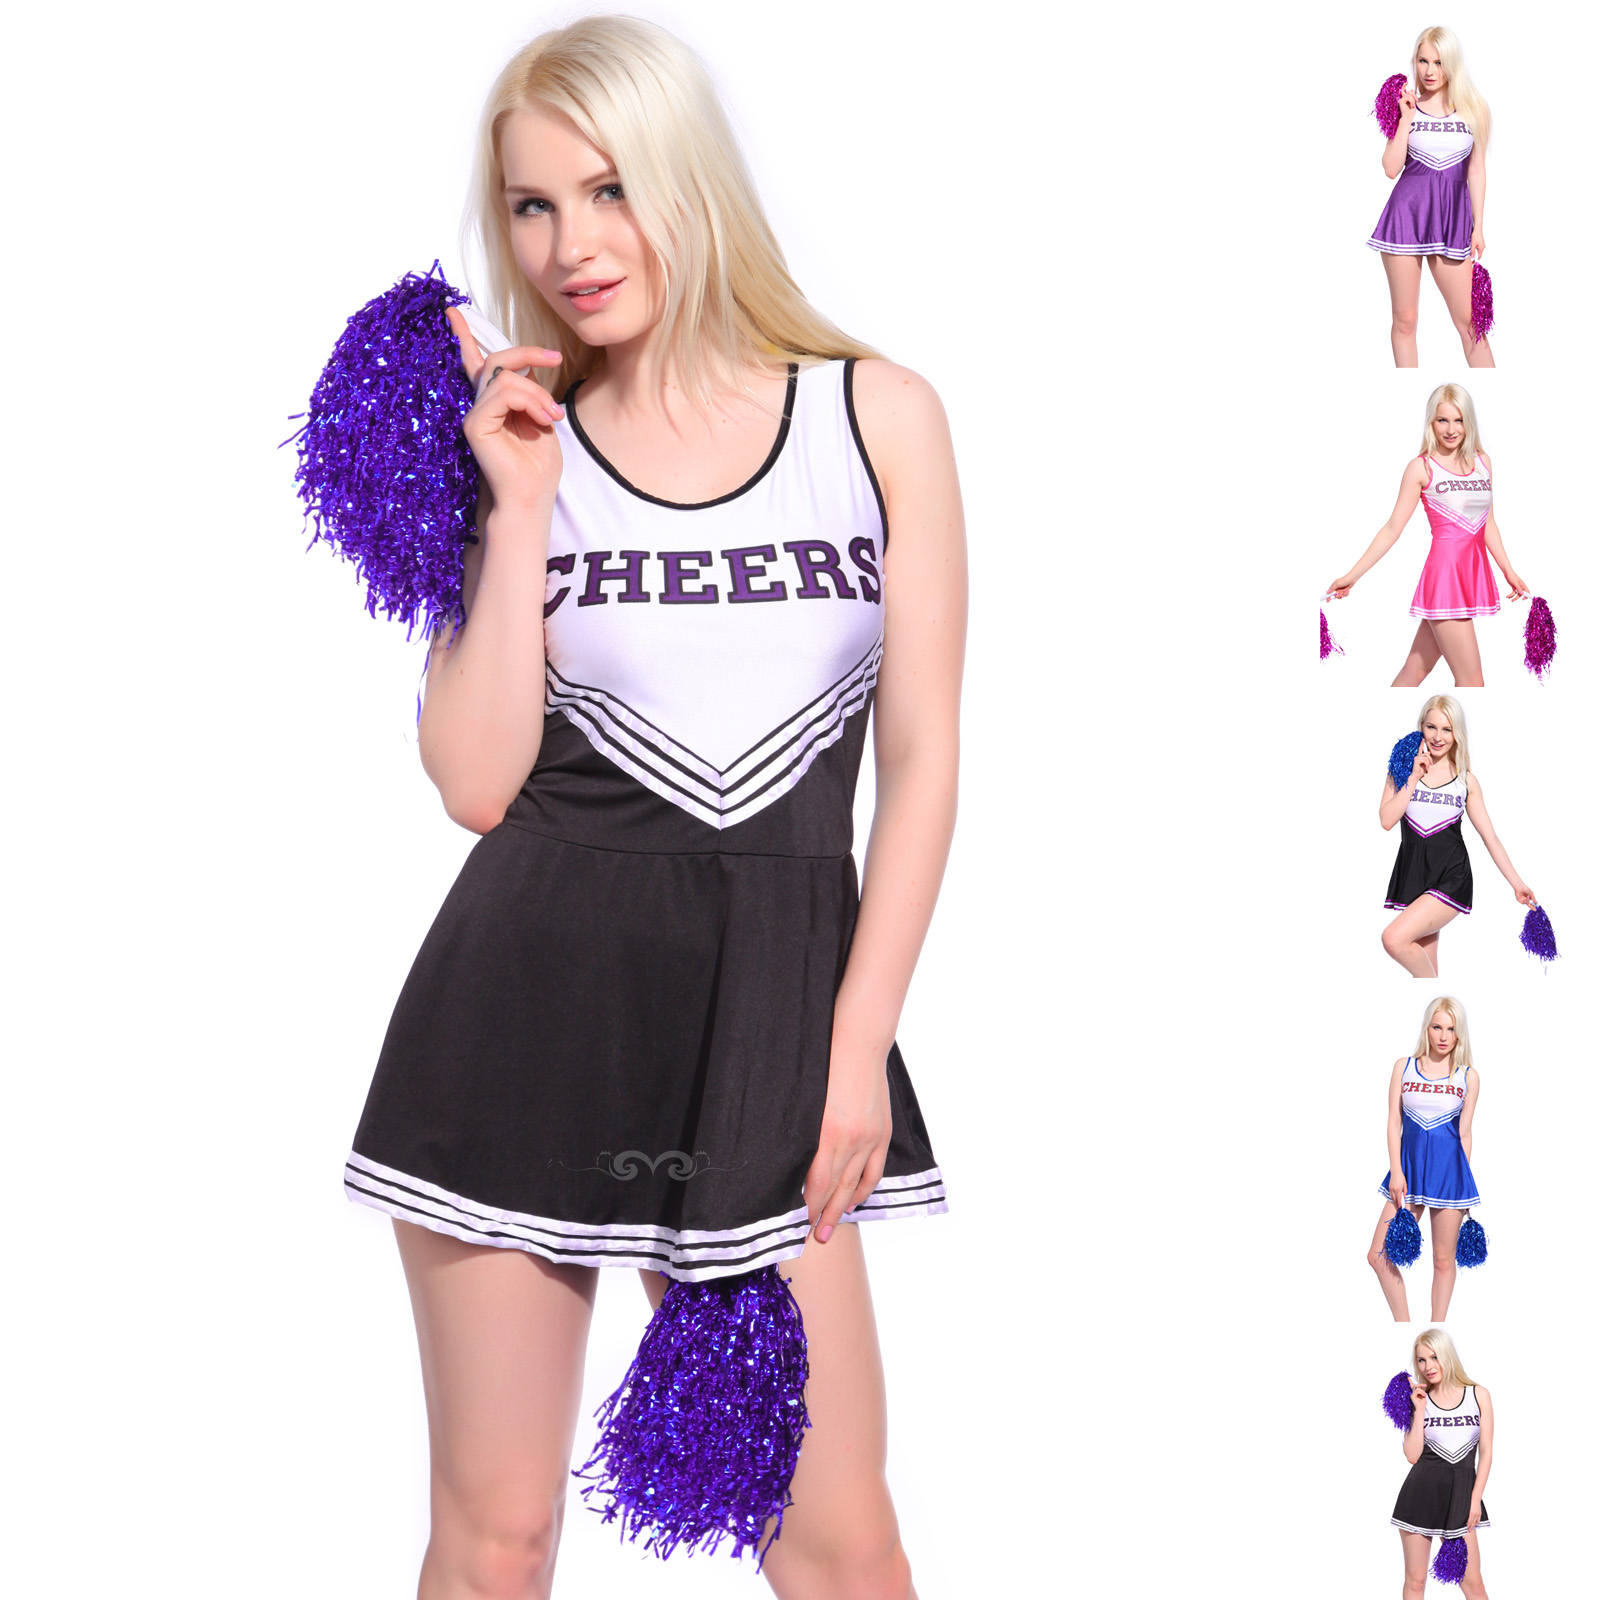 F1537-1 Sexy Cheerleader Uniform Kleid Trikot Dress